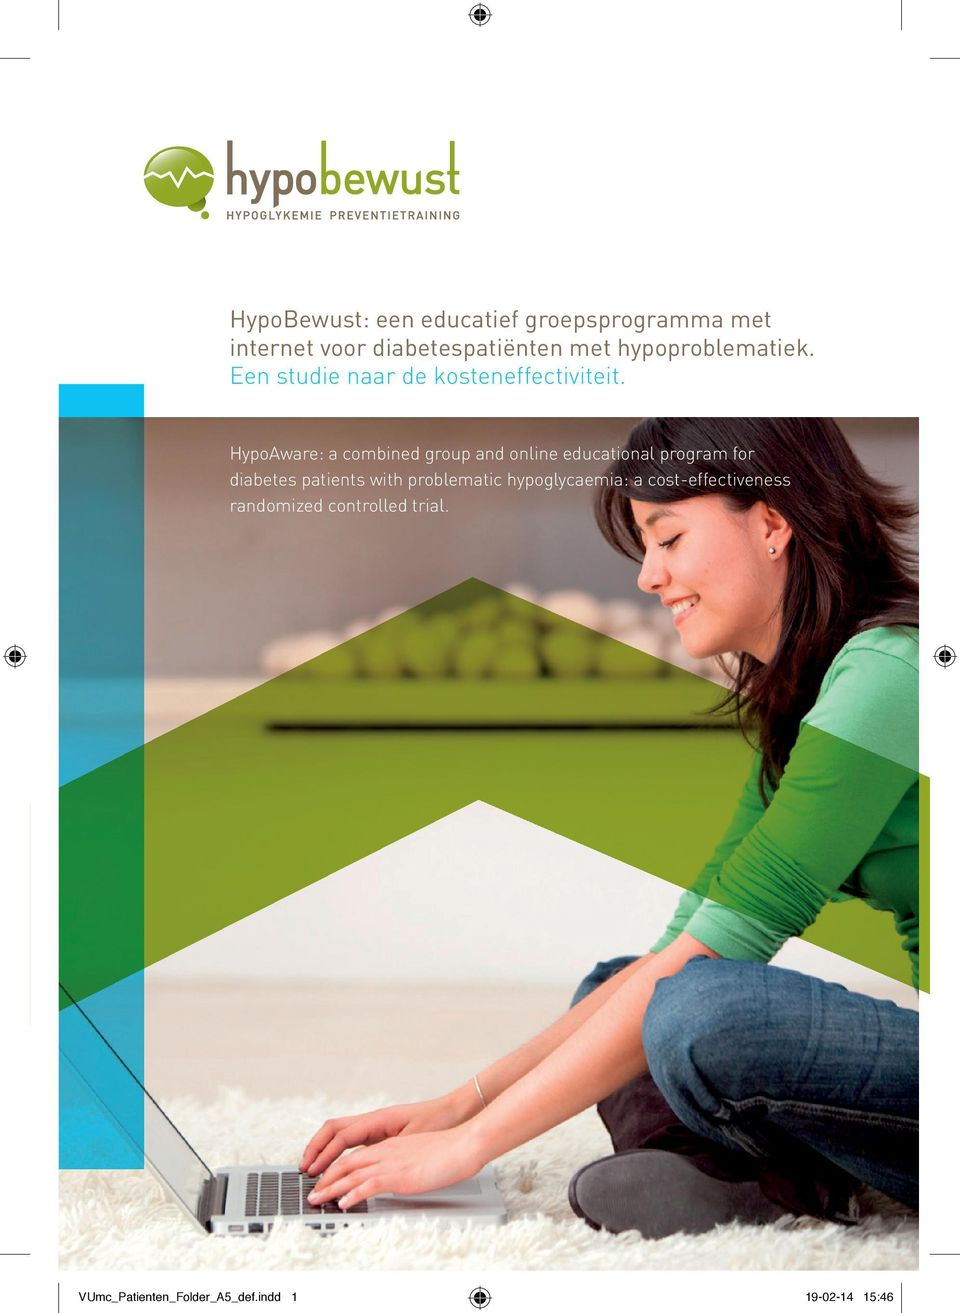 HypoAware: a combined group and online educational program for diabetes patients with